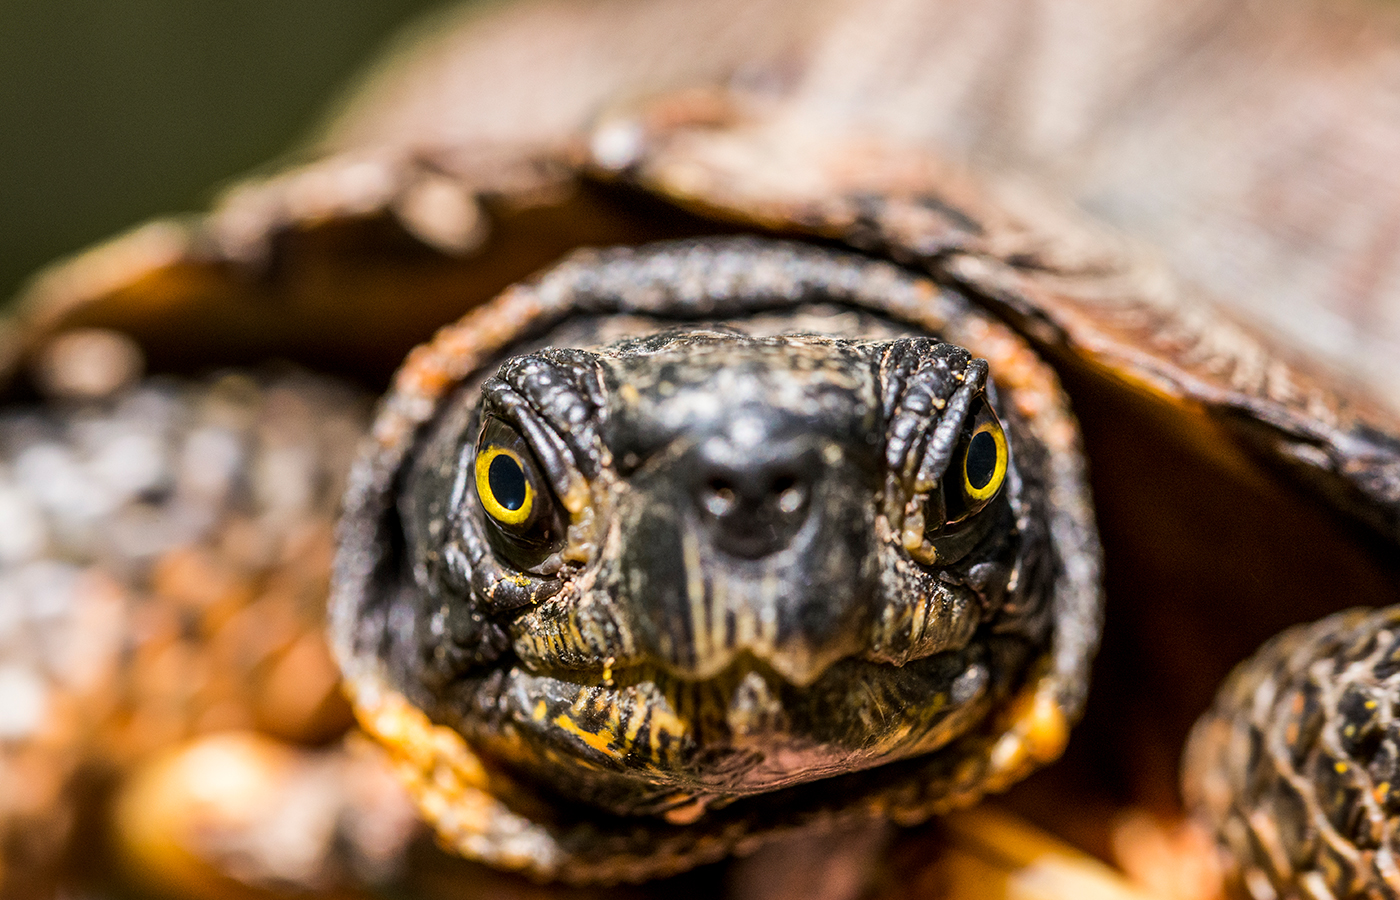 A close-up photo of a wood turtle's face. The turtle has yellow eyes and black and yellow-orange mottled skin